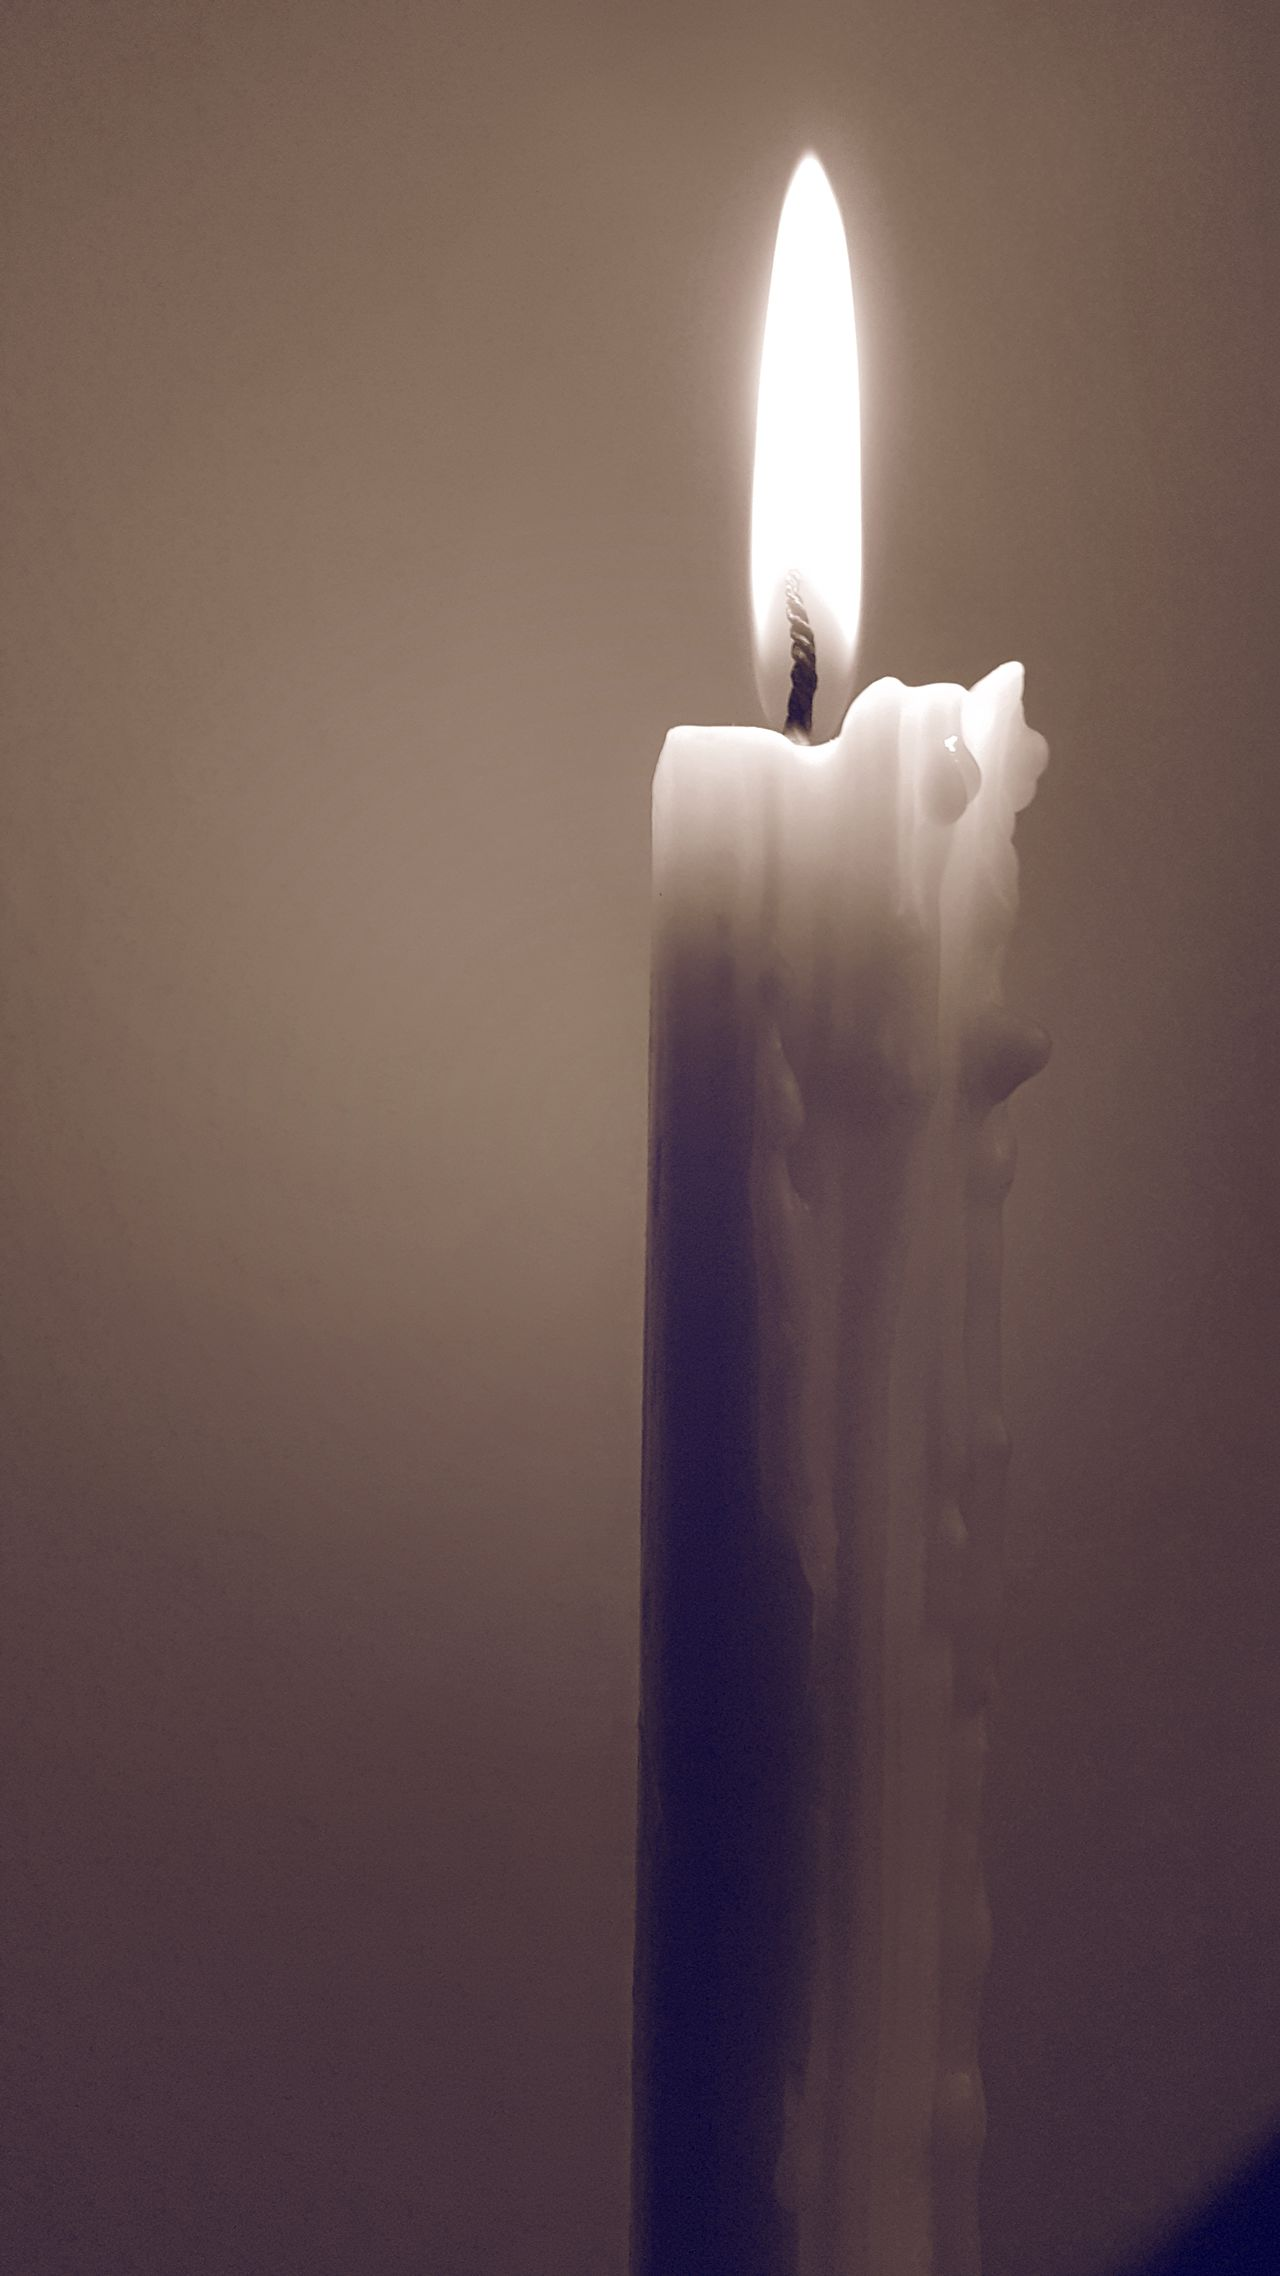 The light shines in the darkness, and the darkness has not overcome it Candlelight Flame Burning Candle Heat - Temperature No People Close-up Indoors  Wax Candle Fire Burning Light Up The Darkness Sepia Simplicity Monochrome_life Stillness In Time Still Life Lux Sepia Scenes White